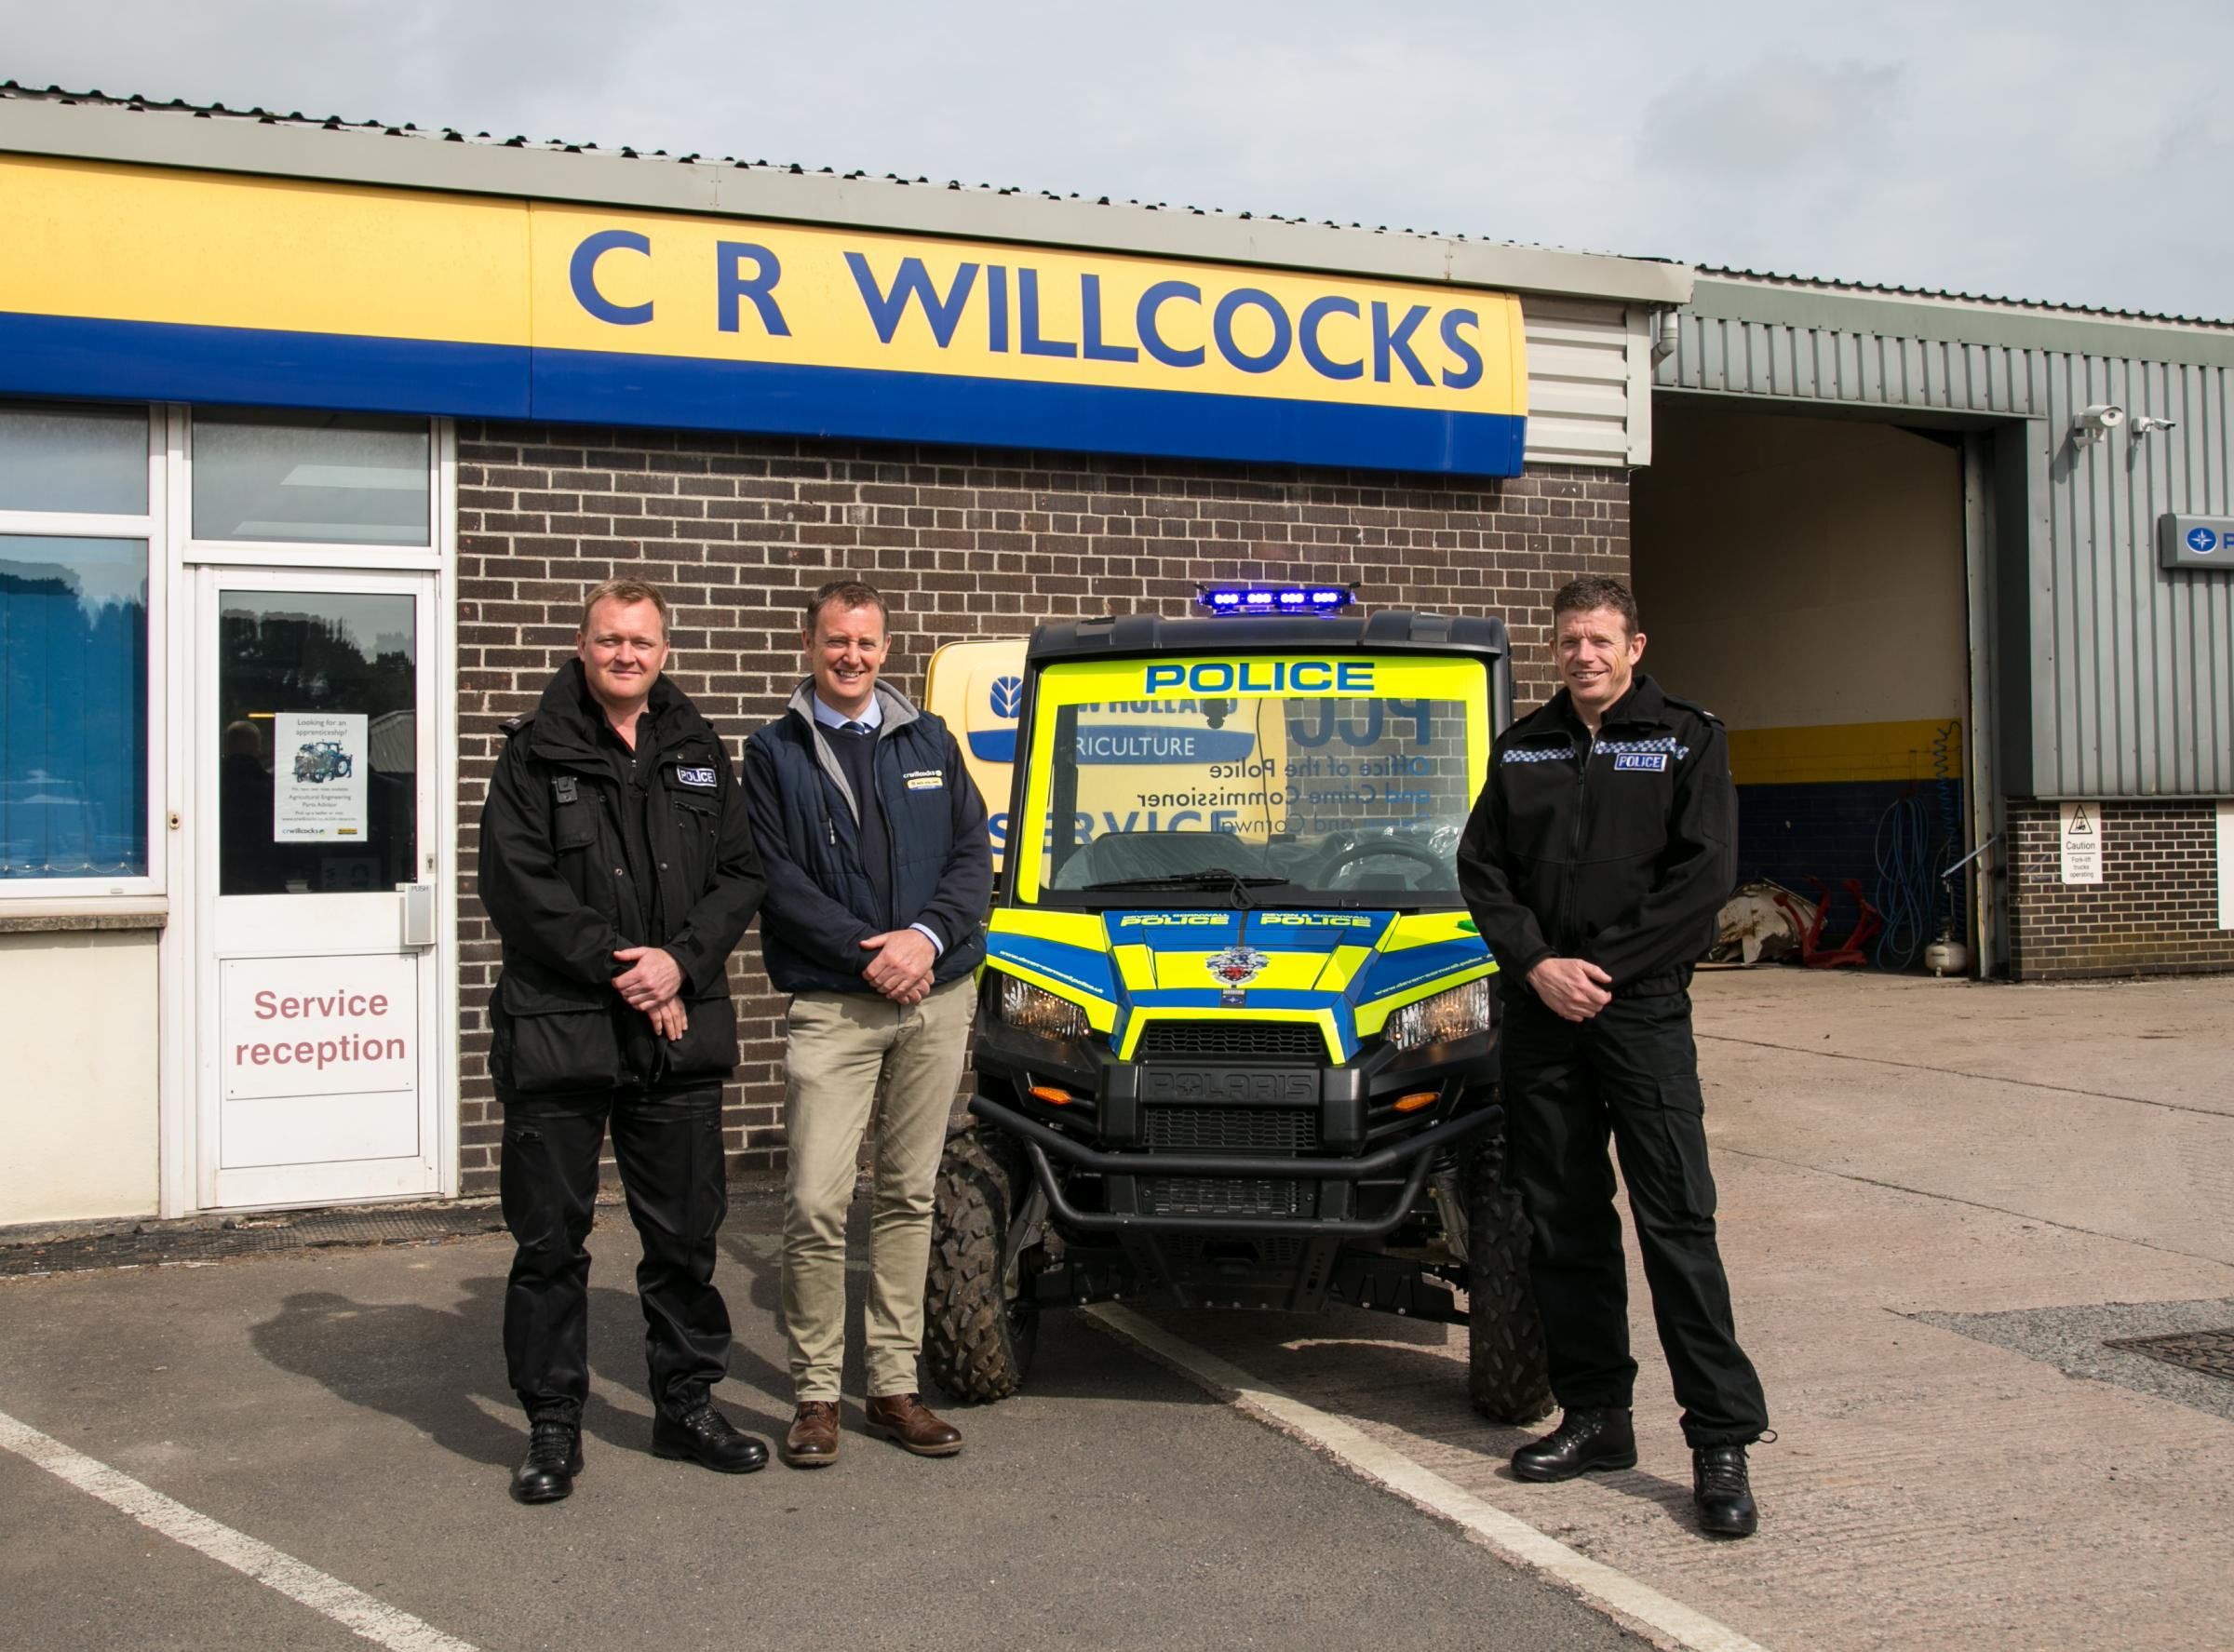 Left to right: PC Martin Beck (Devon and Cornwall Police Rural Crime Officer), Stephen Retallick (Sales Director at CR Willcocks) and PC Chris Collins (Devon and Cornwall Police Rural Crime Officer).